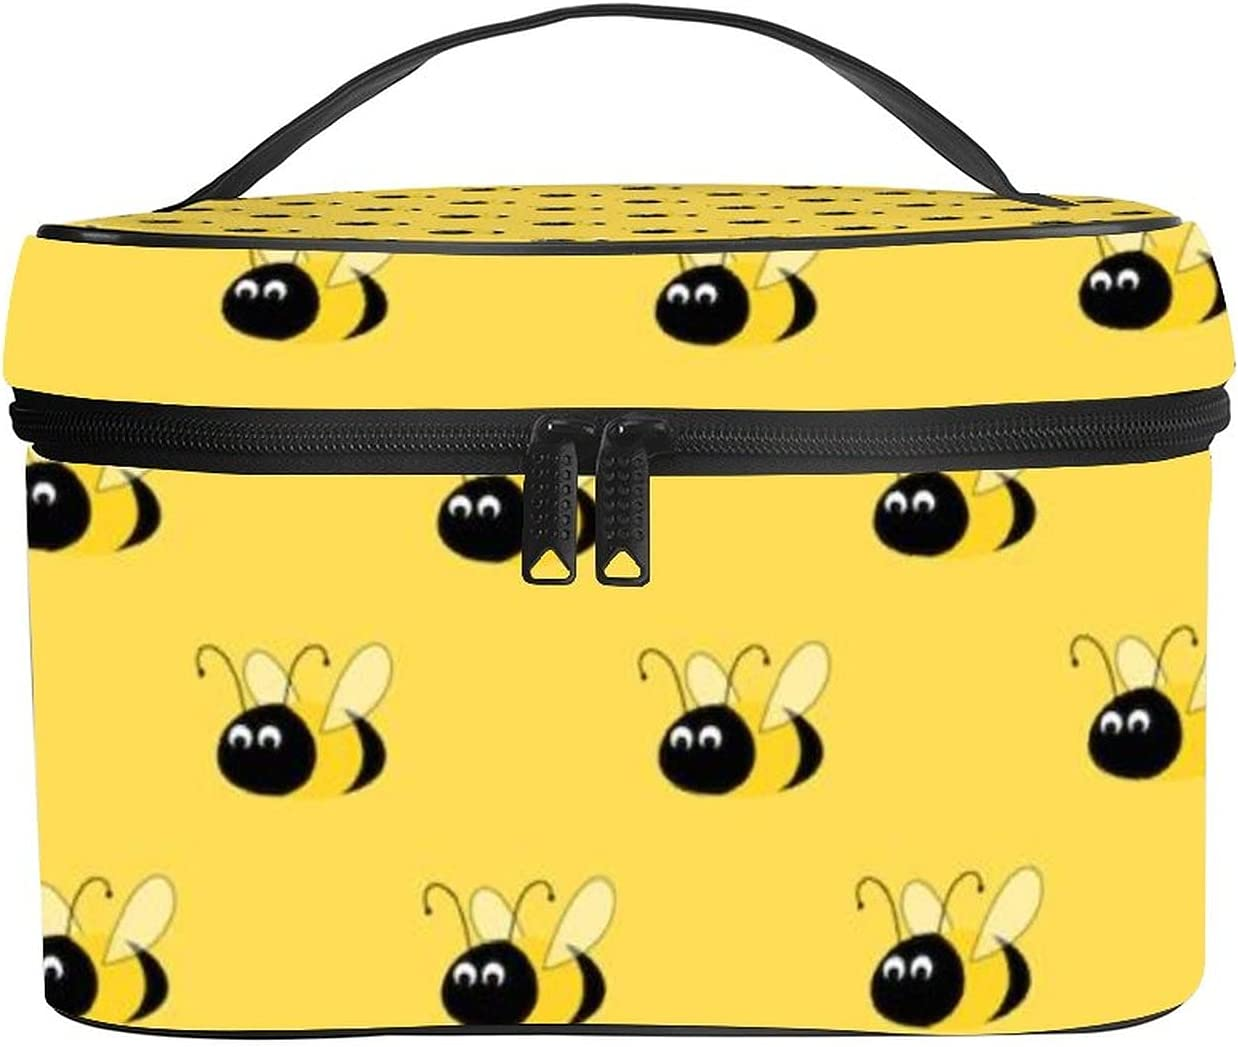 NiYoung Toiletry Bag Award Yellow Bees Makeup Daily bargain sale Novelty Cosmetic Po Bags